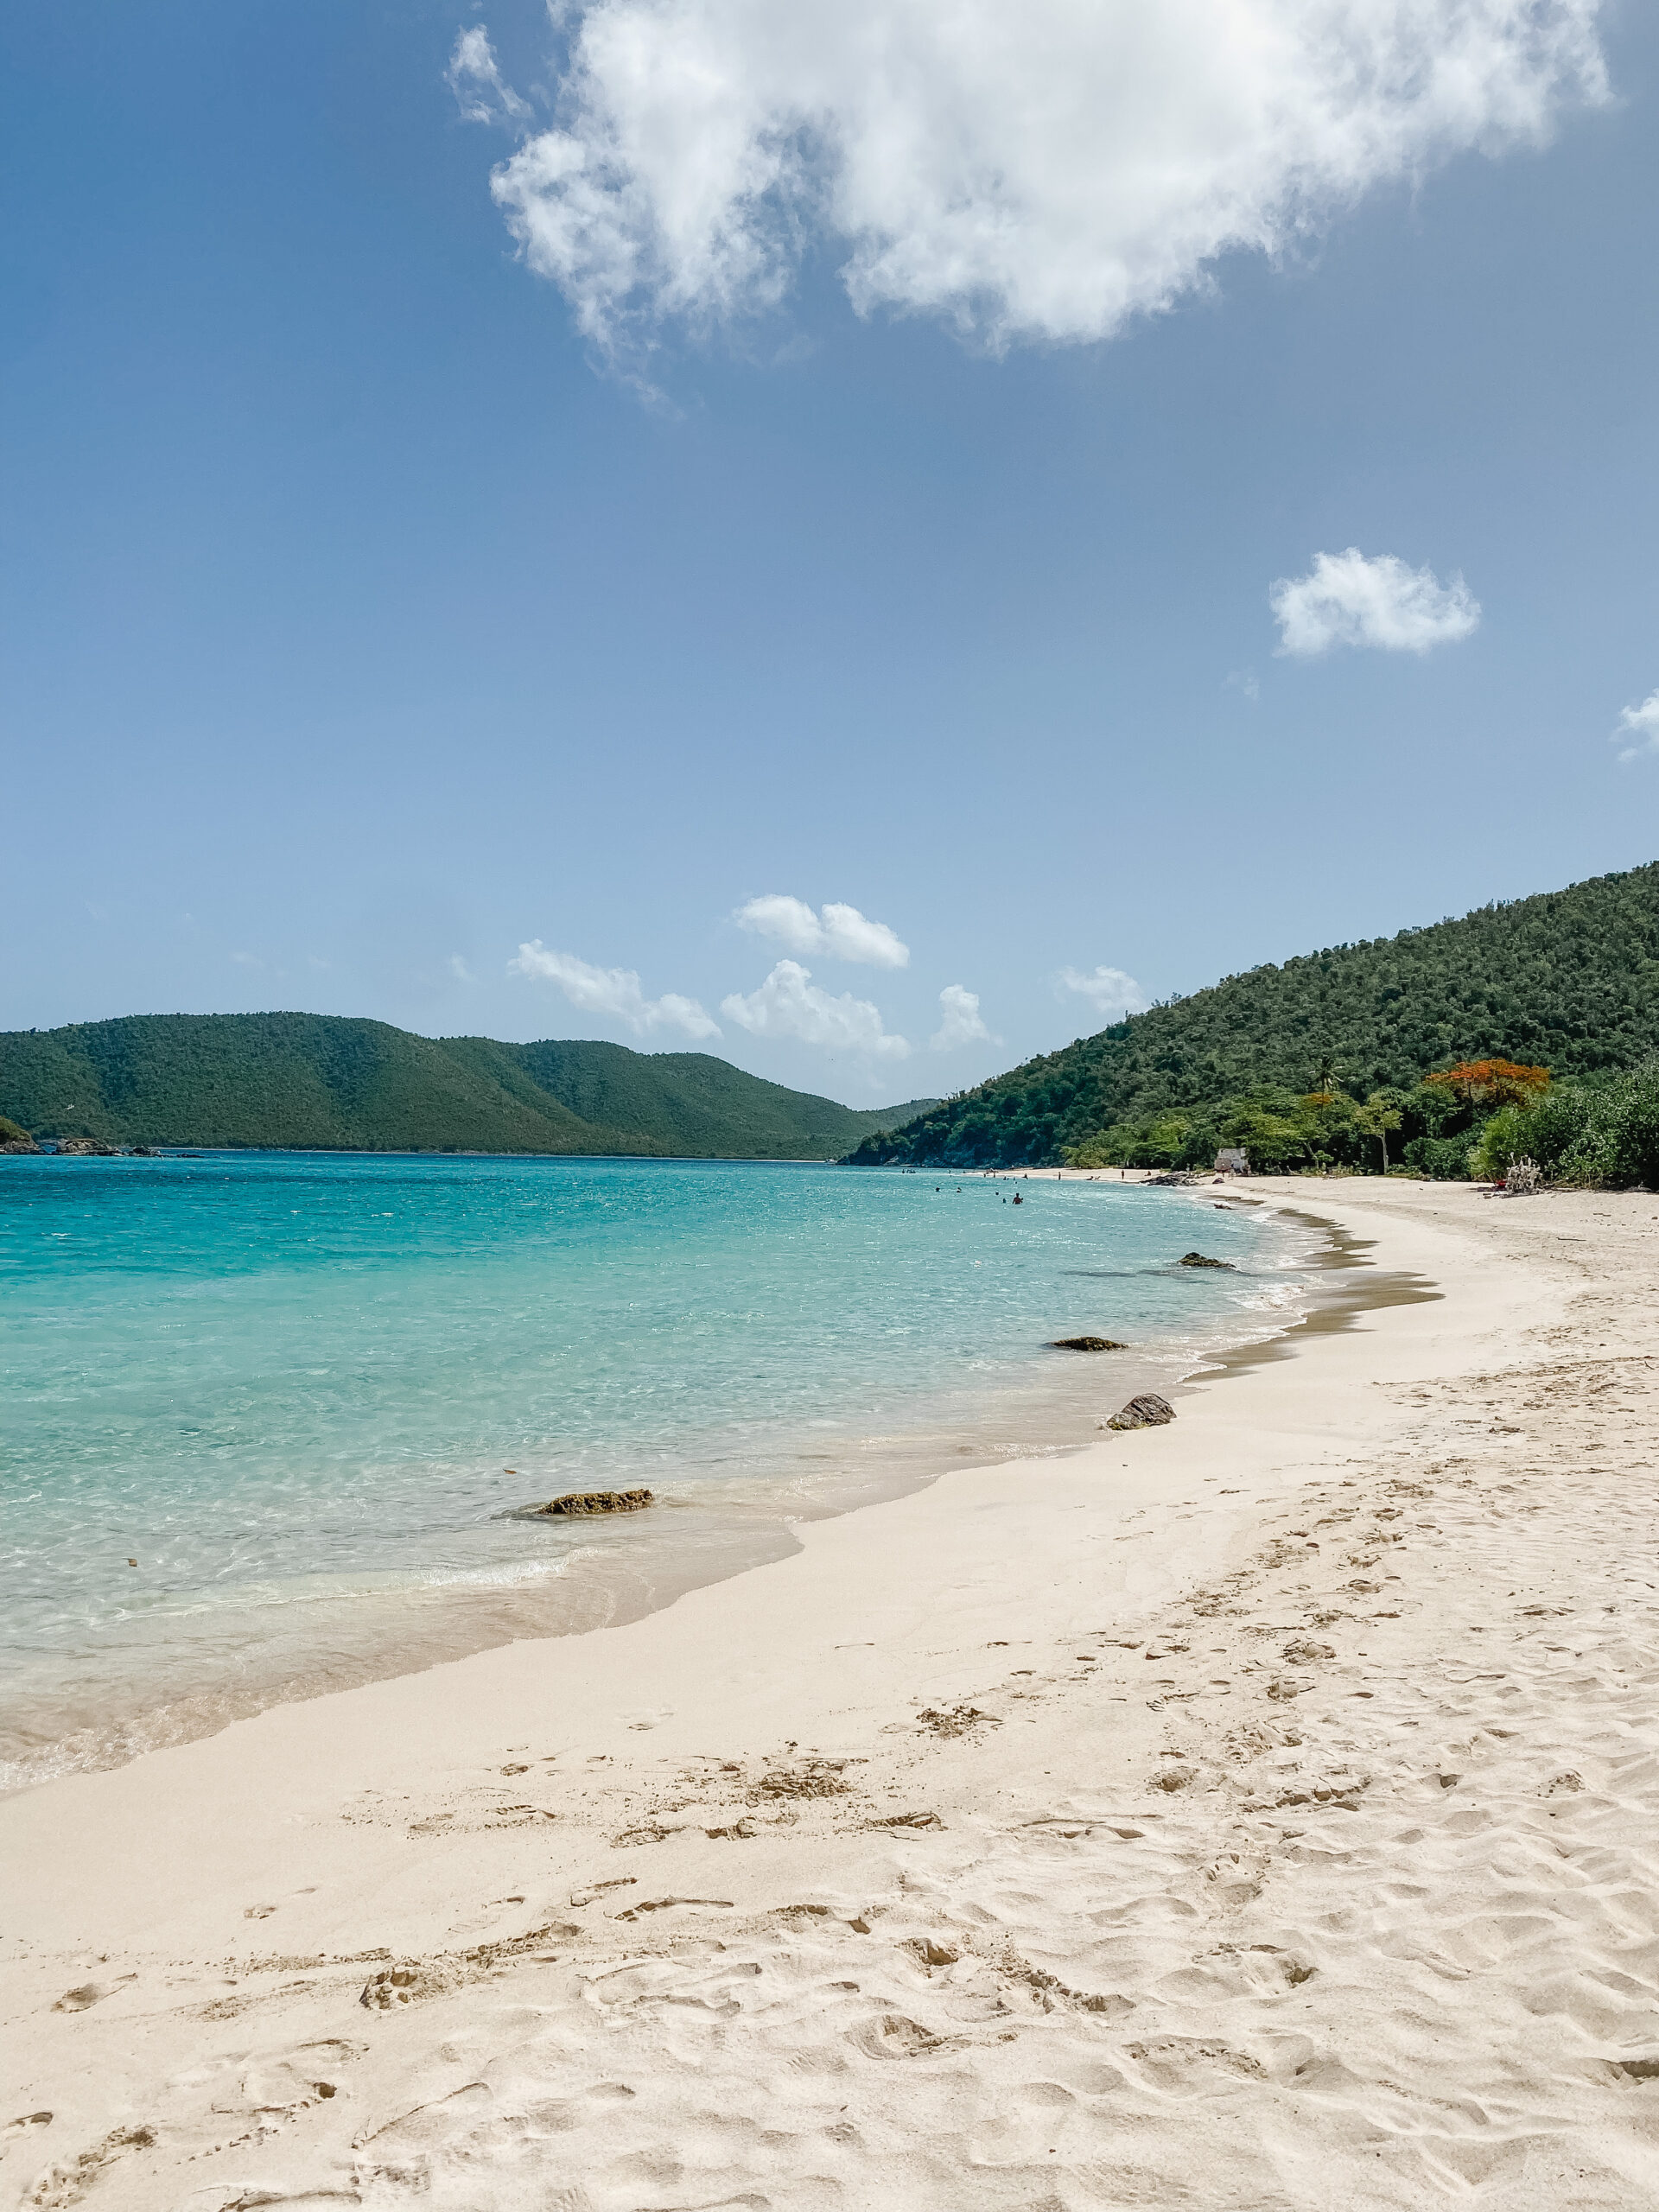 Looking to book a trip to St. John, USVI? Life and style blogger Lauren McBride shares her family's recommendations.